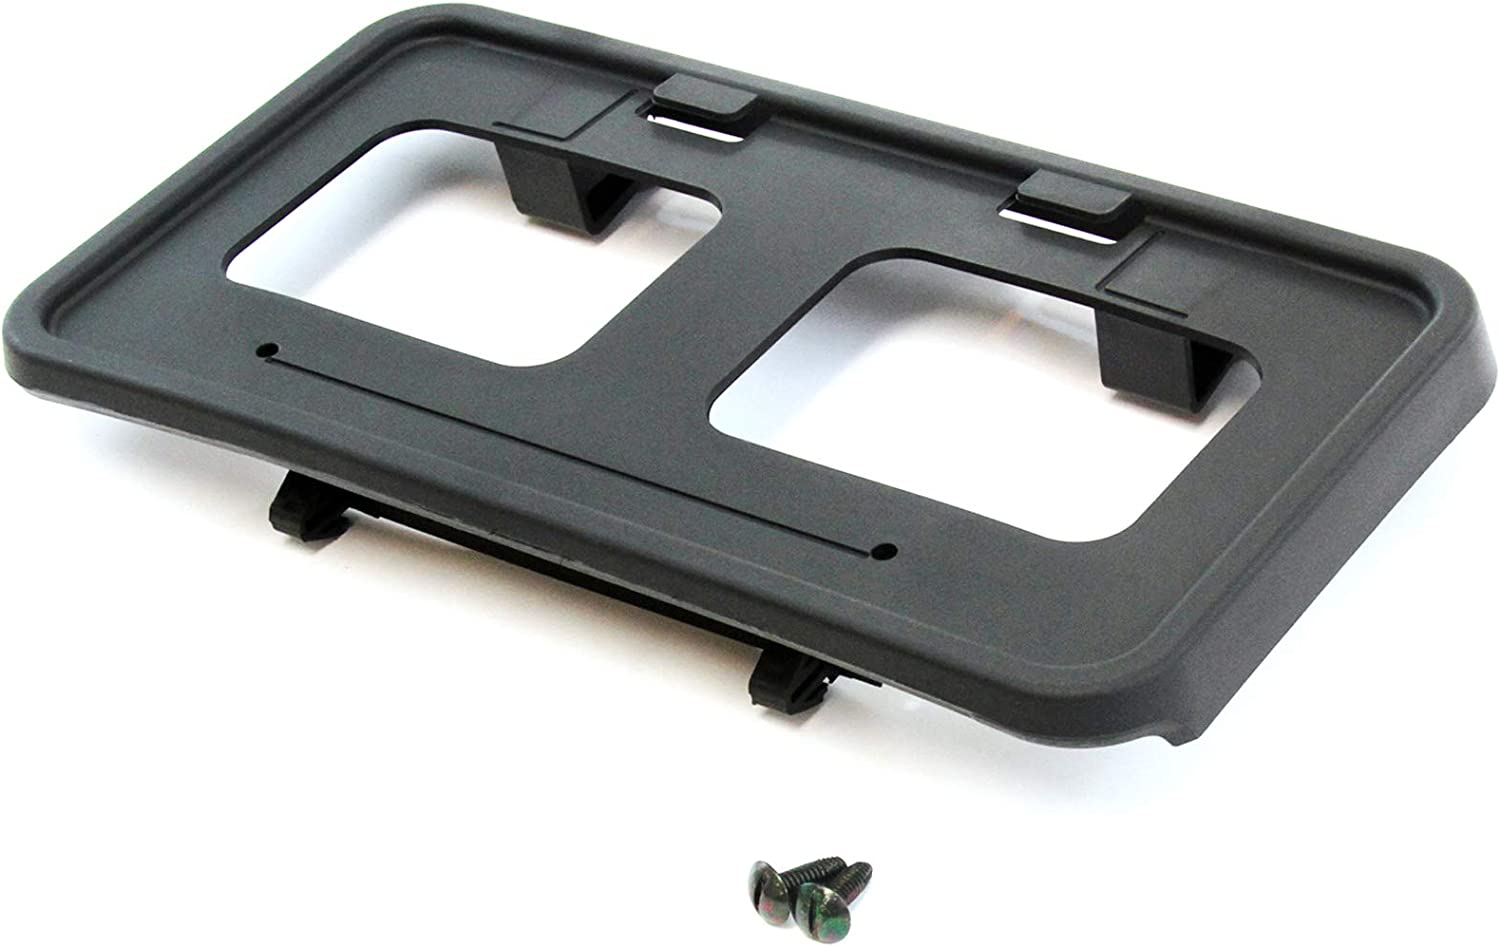 2011-2016 Ford Explorer Front License Plate Bracket Mount Holder OEM NEW Genuine